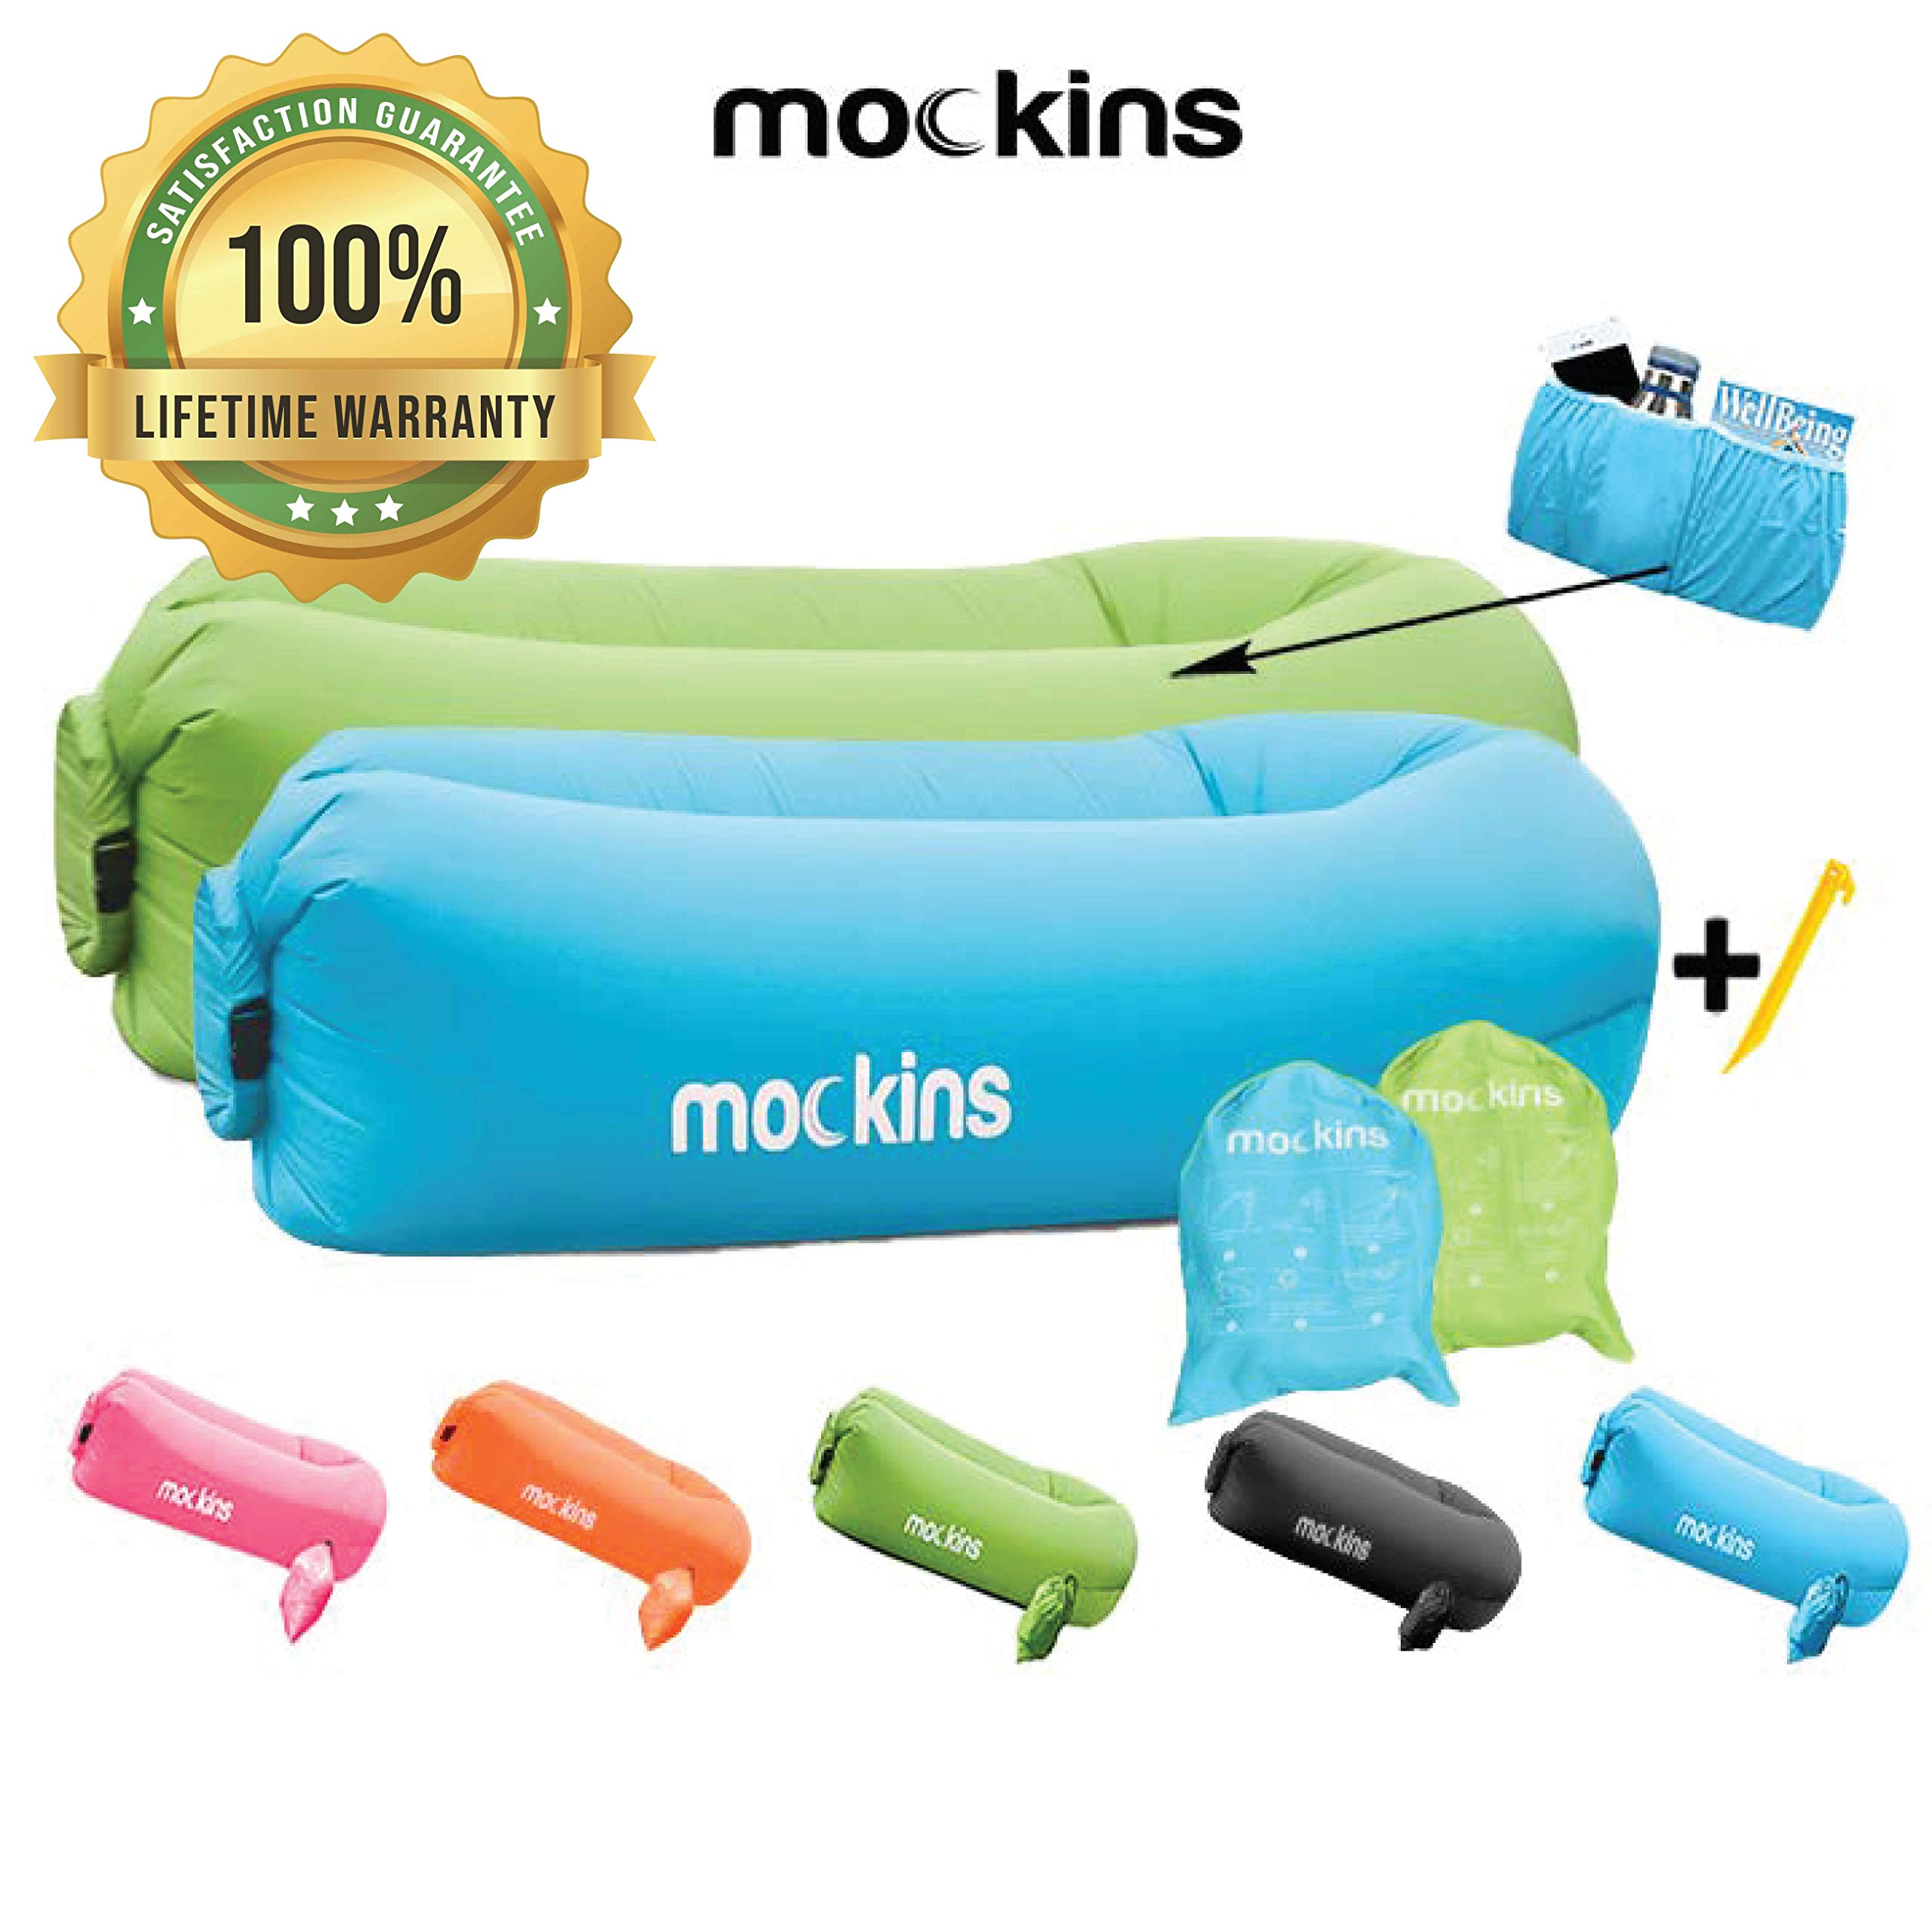 Mockins 2 Pack Inflatable Lounger Air Sofa Perfect for Beach Chair Camping Chairs or Portable Hammock and Includes Travel Bag Pouch and Pockets | Easy to Use Camping Accessories -Blue and Green Color by Mockins